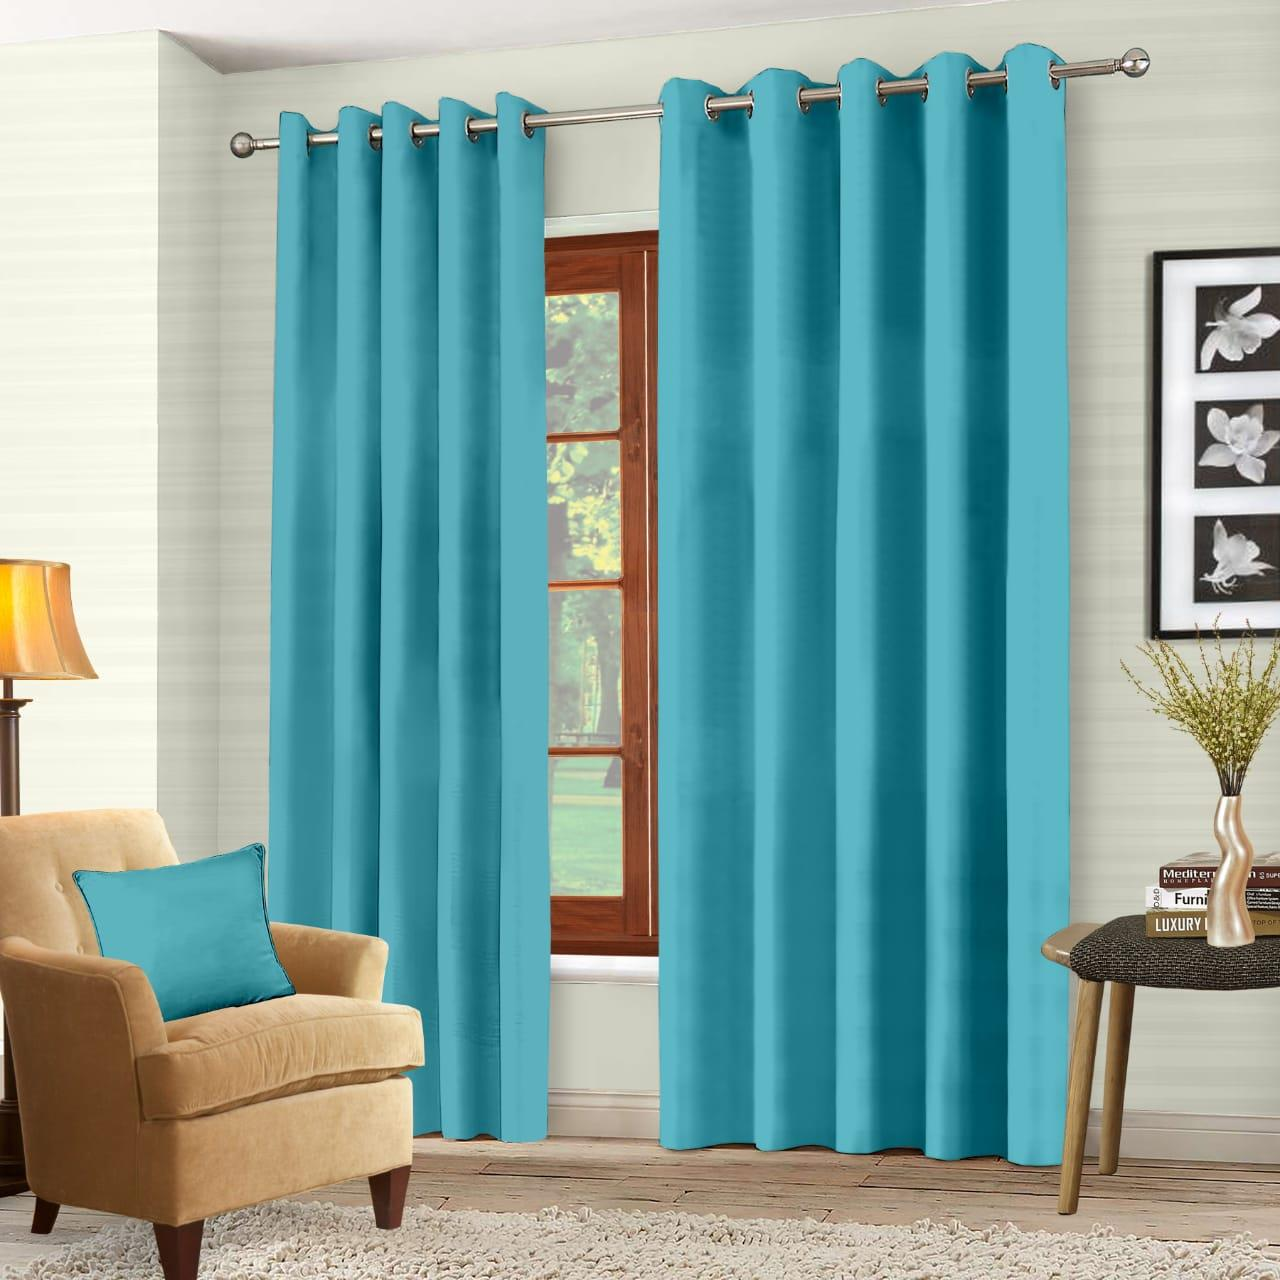 Luxury-Thermal-Blackout-Eyelet-Ring-Top-Curtains-Pair-with-tie-backs thumbnail 58